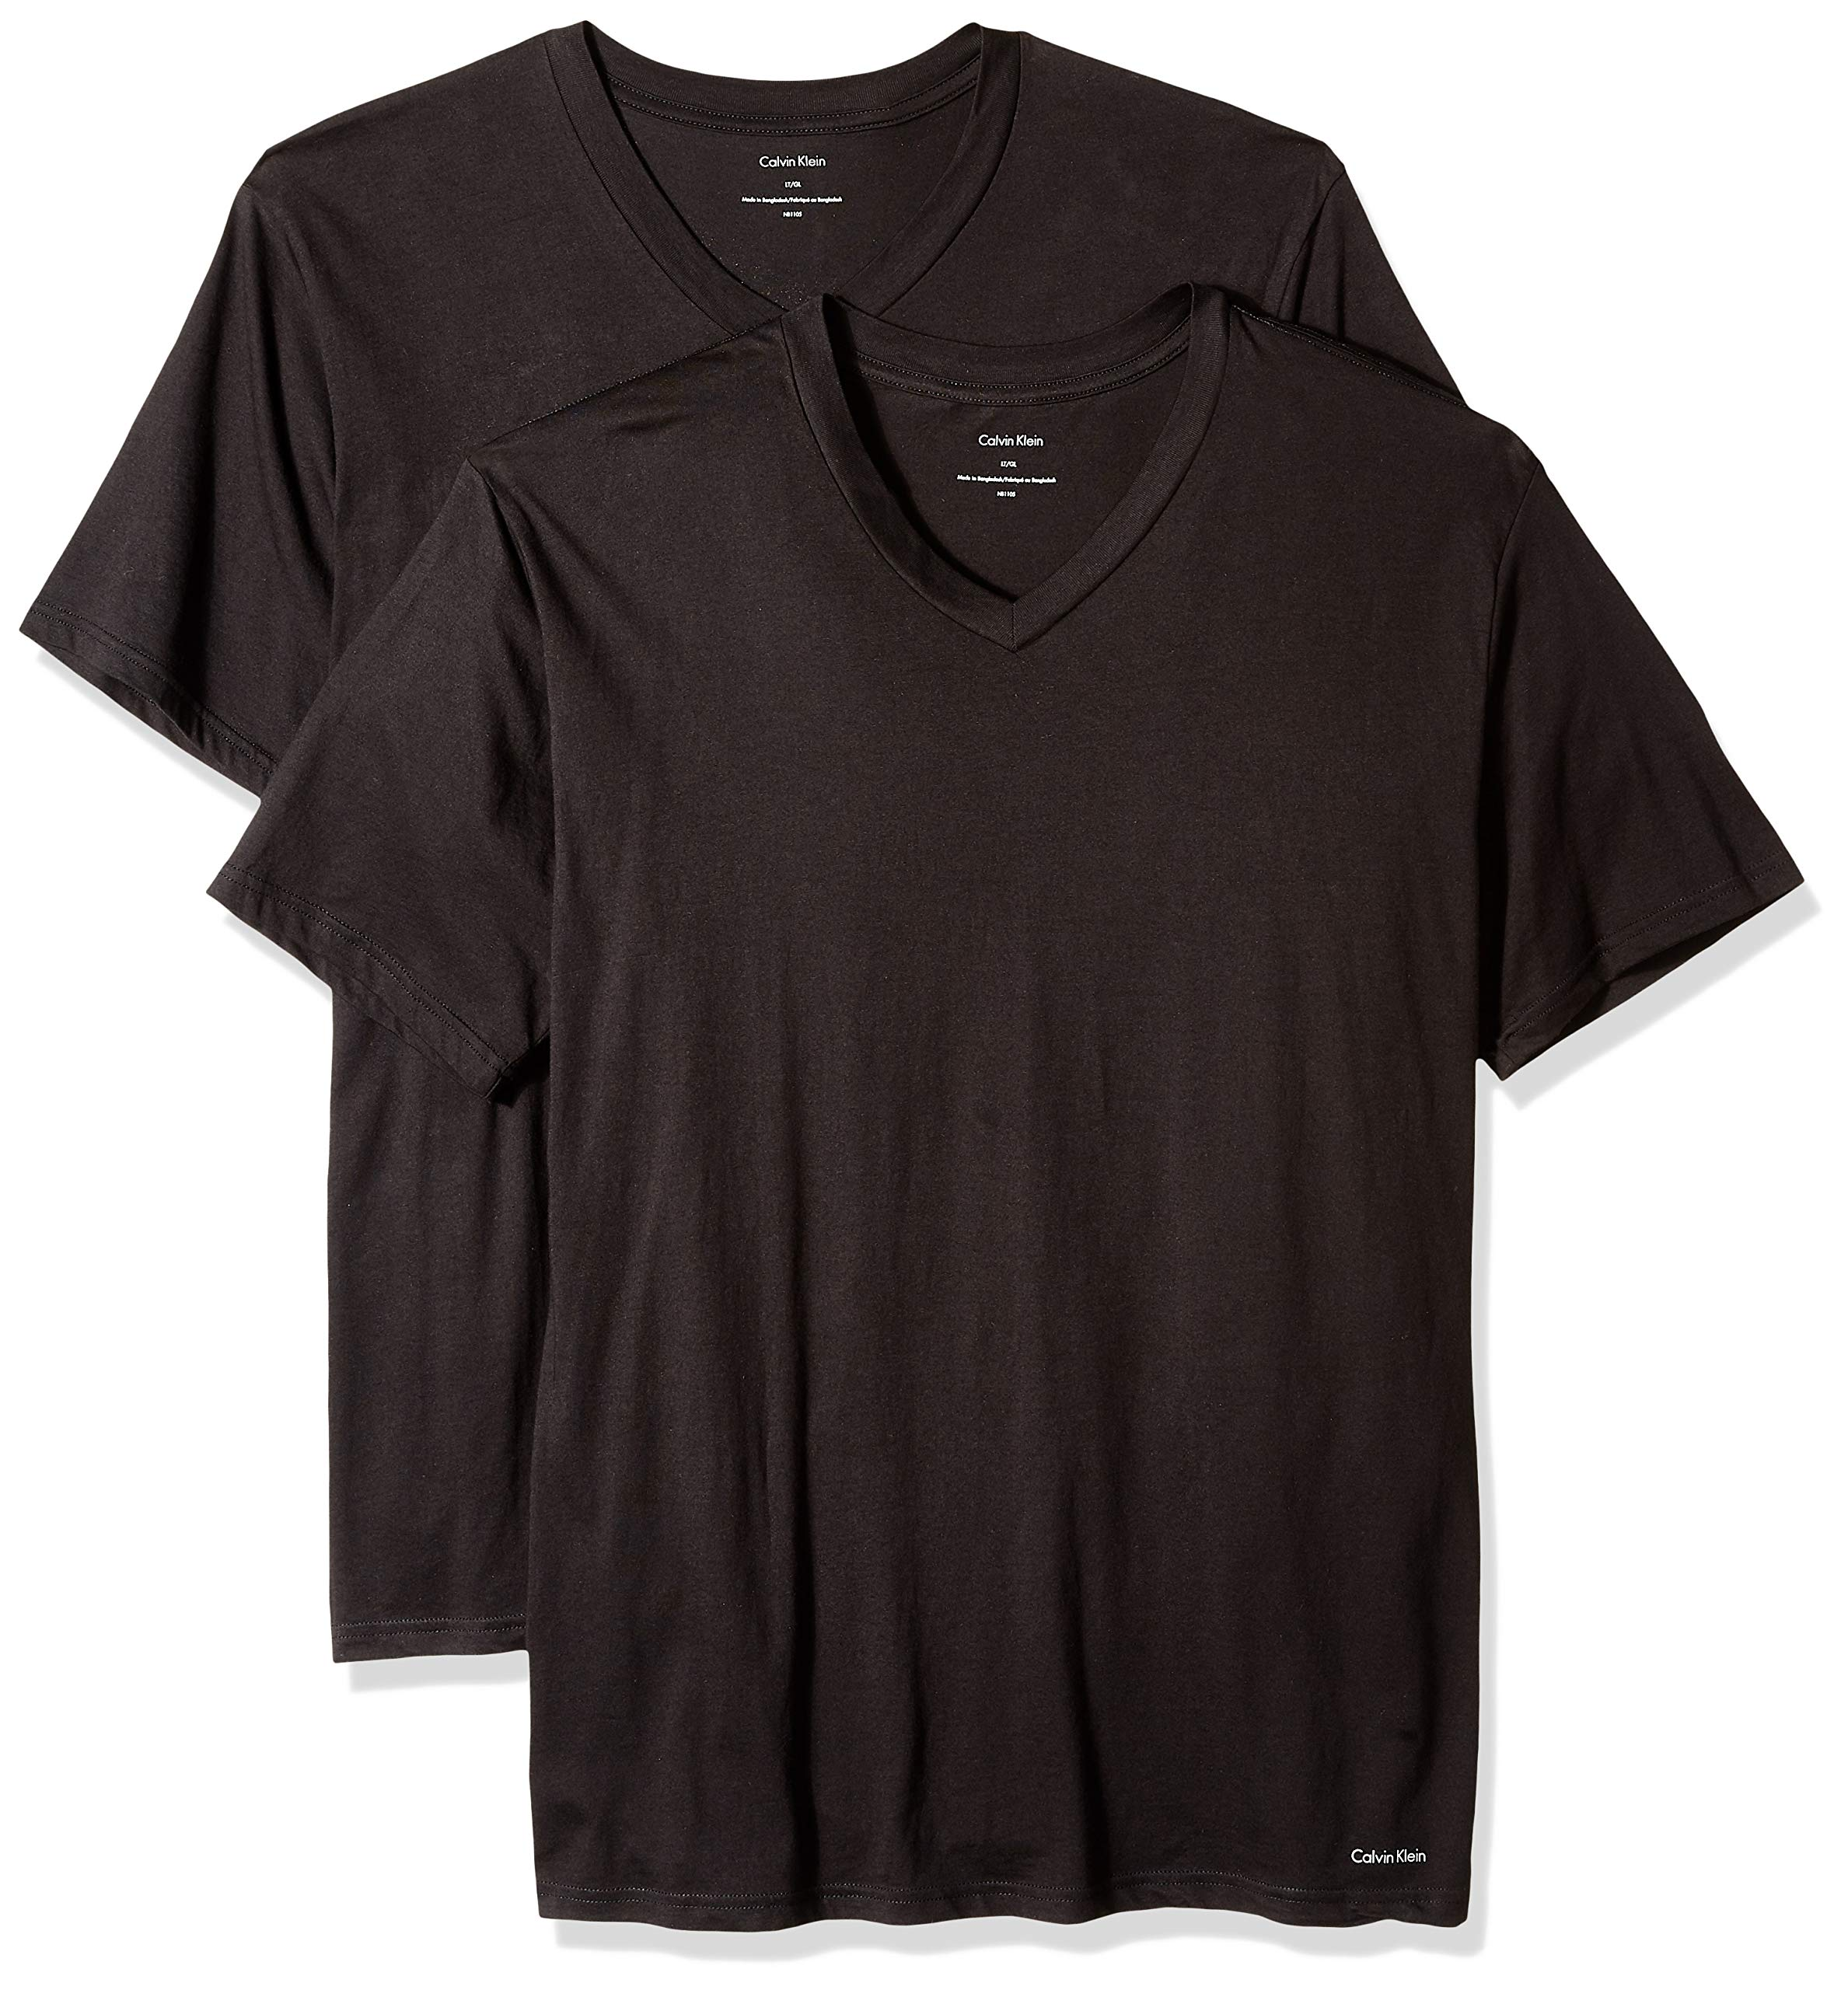 Calvin Klein Men's Size Big and Tall Cotton Classics 2 Pack V Neck Tshirts, Black, 2X by Calvin Klein